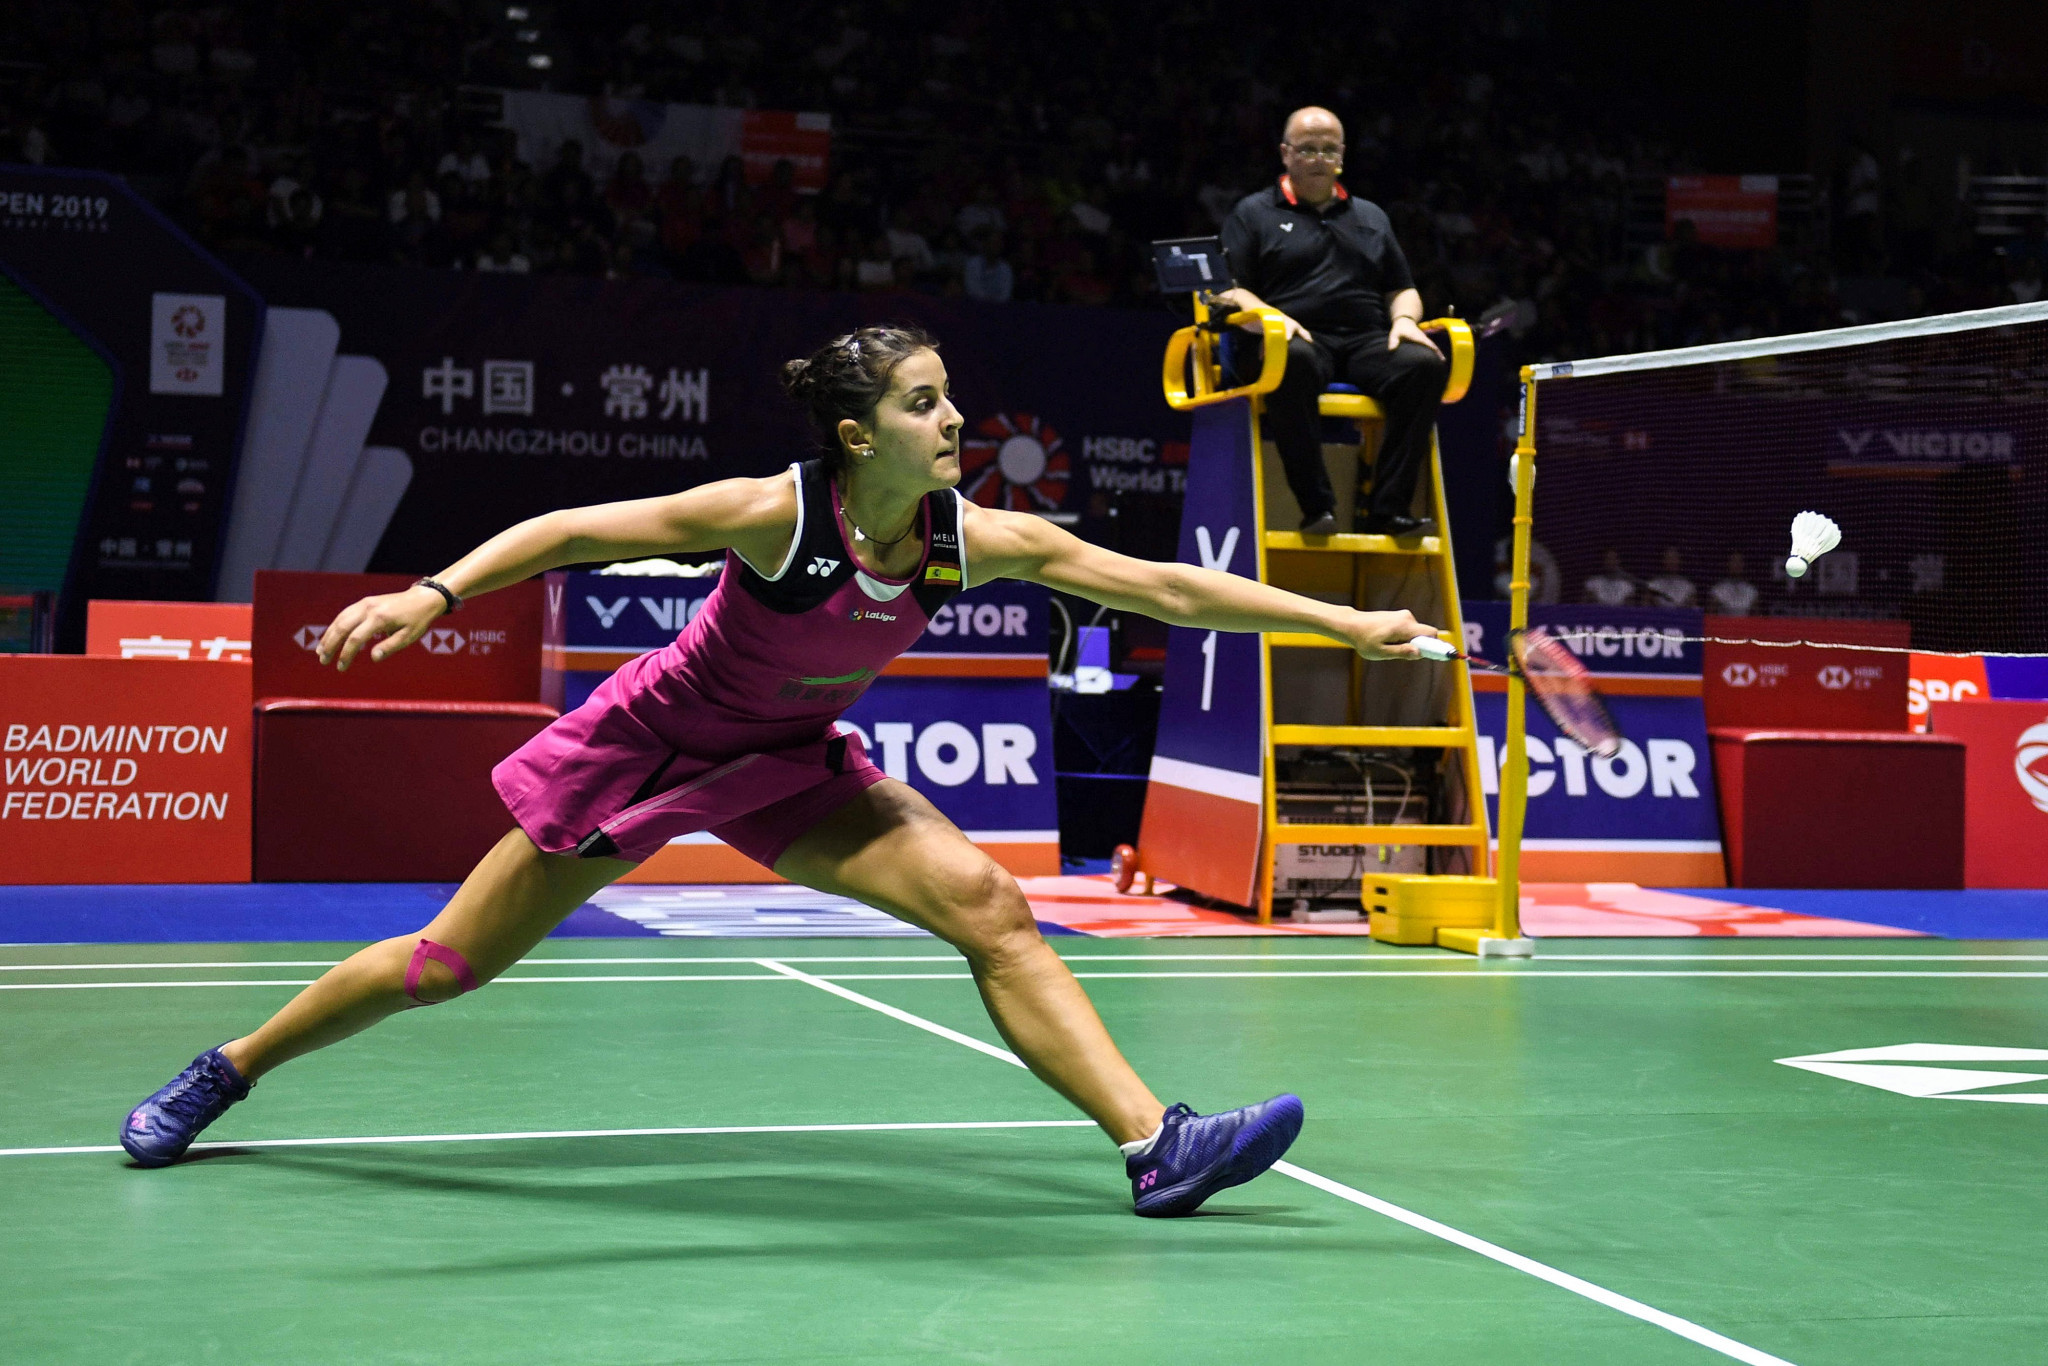 Olympic champion Marín through to last eight at Syed Modi International Badminton Championships